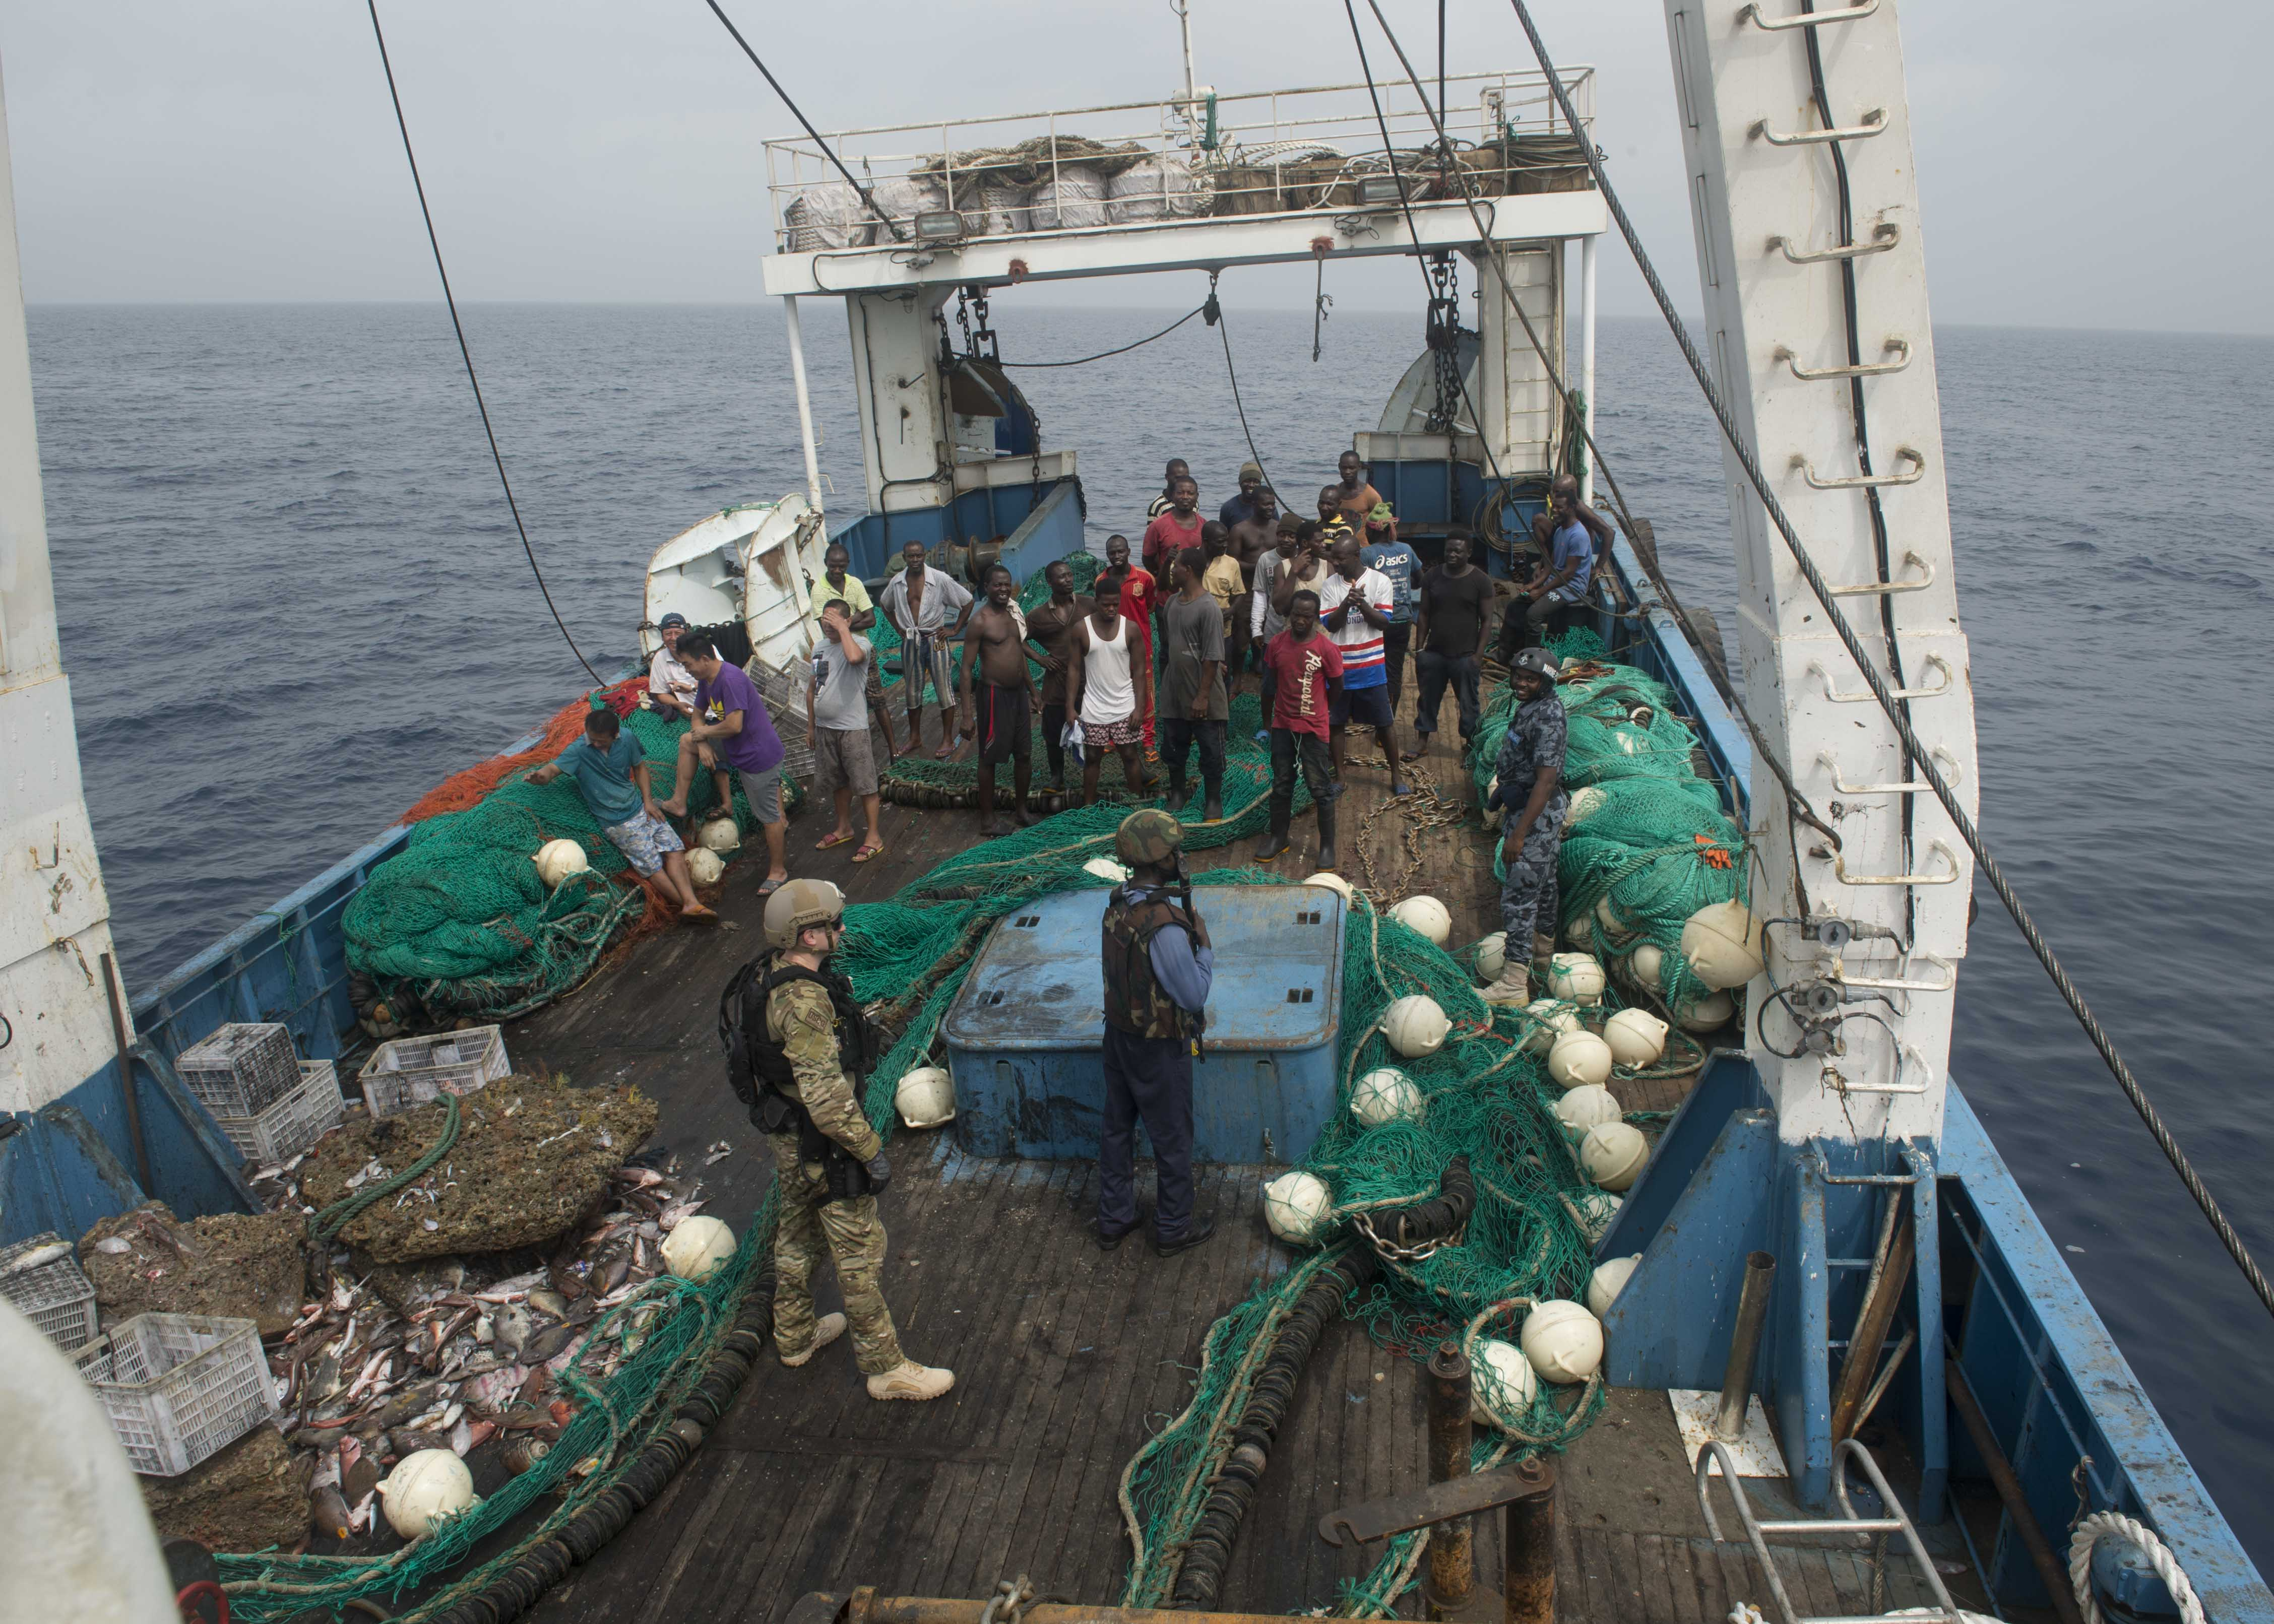 ATLANTIC OCEAN (Feb. 04, 2016) – Members of the Ghanaian Navy and U.S. Coast Guard Tactical Law Enforcement Detachment board a fishing vessel during combined joint boarding operations Feb. 04, 2016. The Military Sealift Command expeditionary fast transport vessel USNS Spearhead (T-EPF 1) is on a scheduled deployment in the U.S. 6th Fleet area of operations to support the international collaborative capacity-building program Africa Partnership Station. (U.S. Navy photo by Mass Communication Specialist 3rd Class Amy M. Ressler/Released)